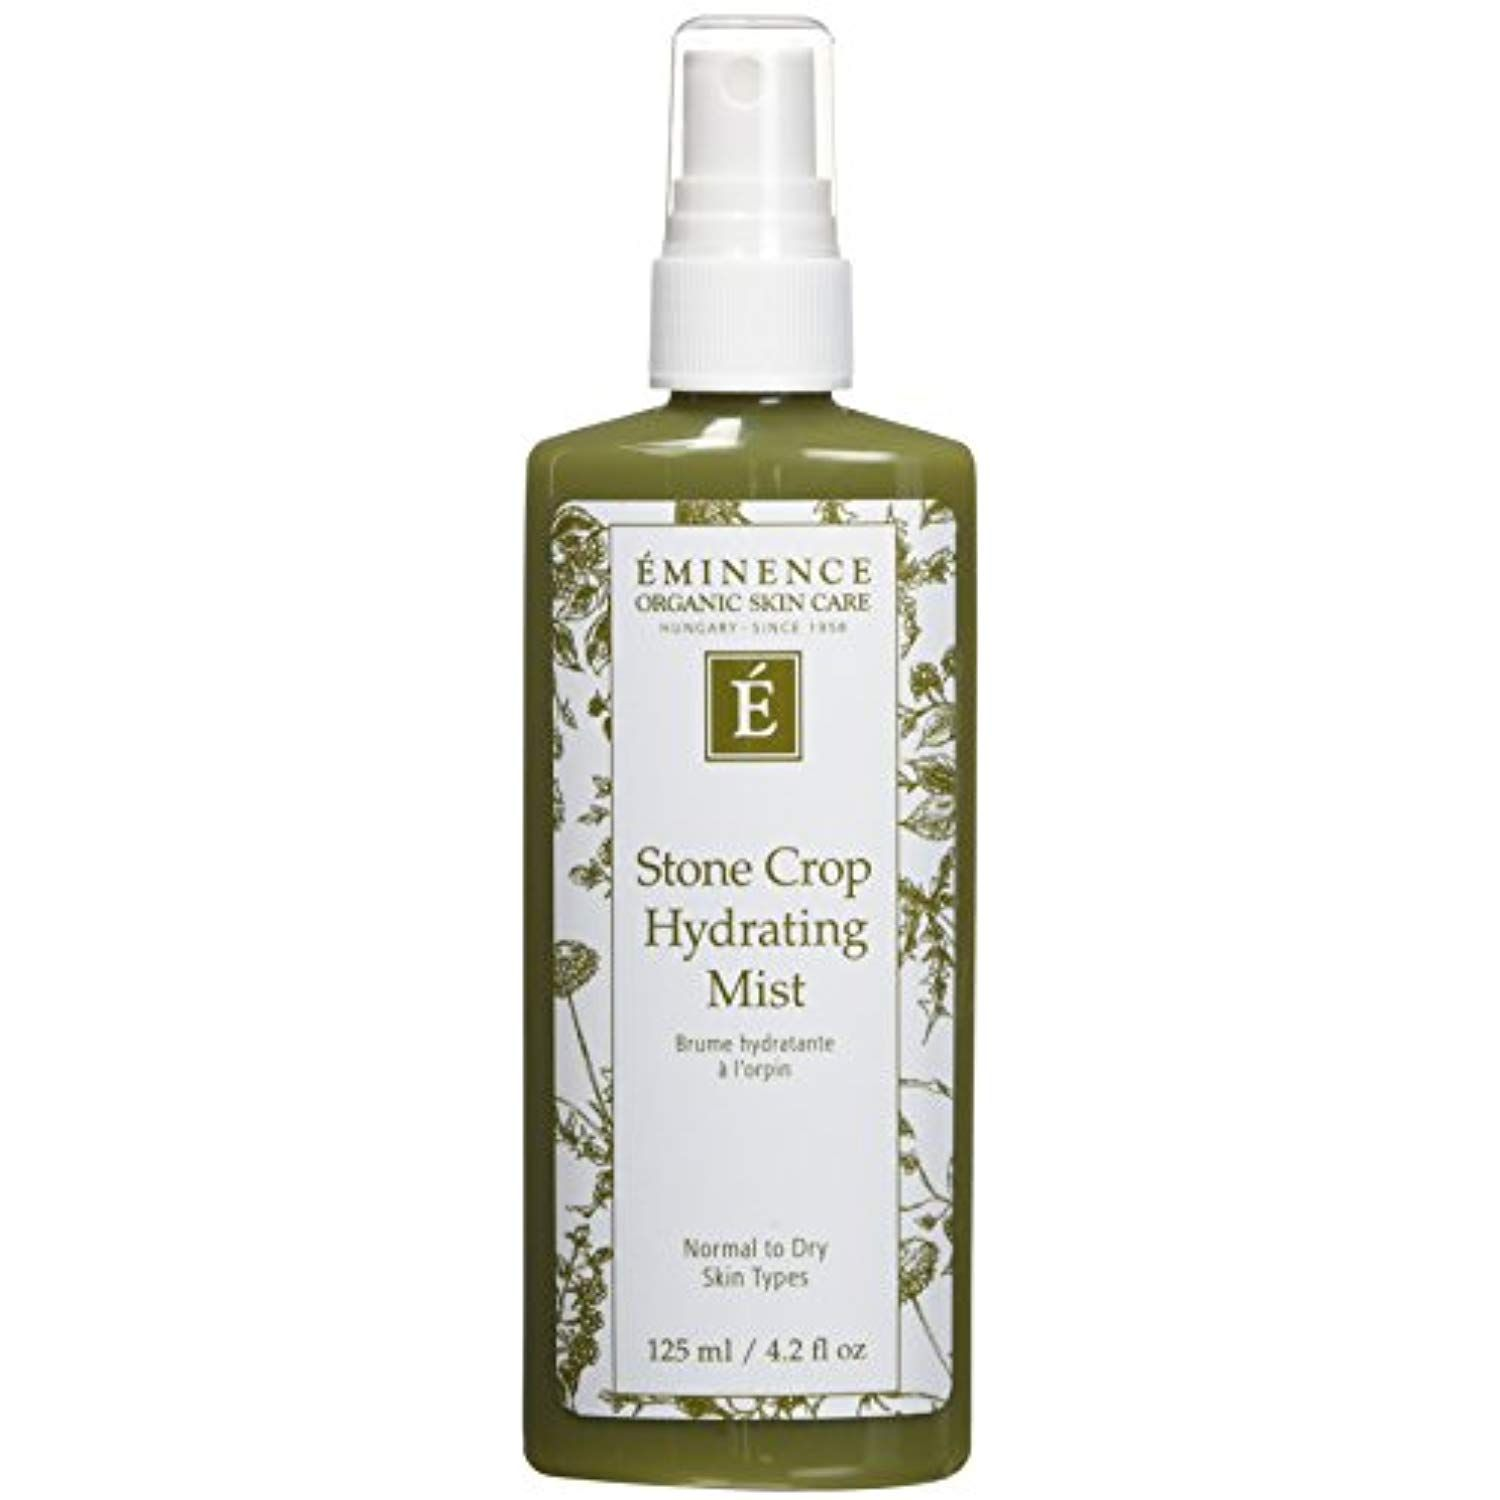 Eminence Organic Skincare Stone Crop Hydrating Mist 4 2 Ounce Learn More By Visiting The Image Link This Is A Organic Skin Care Skin Care Hydrating Mist